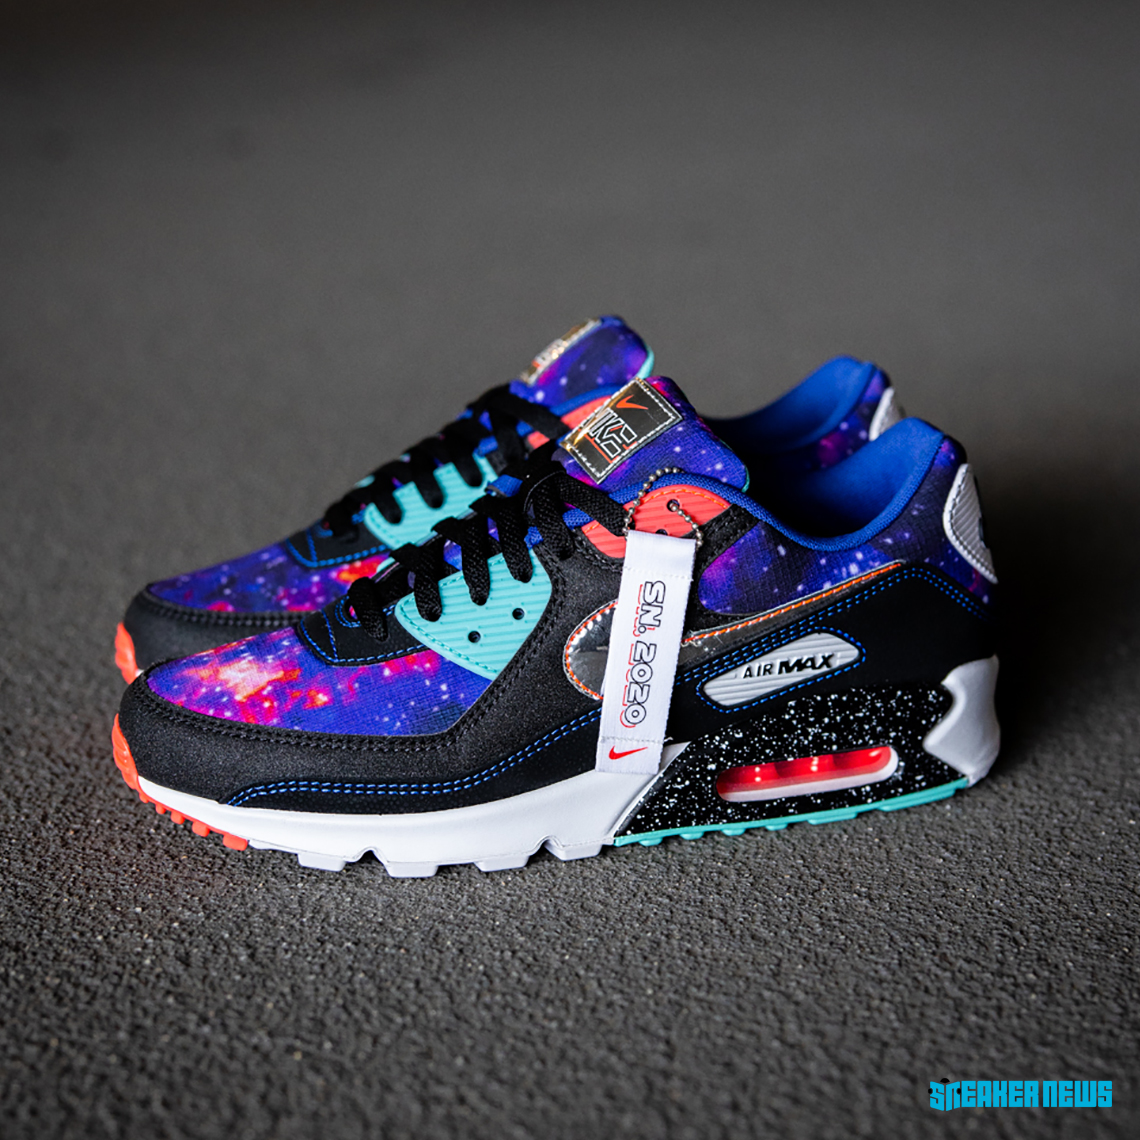 nike-air-max-90-supernova-pack-release-202006